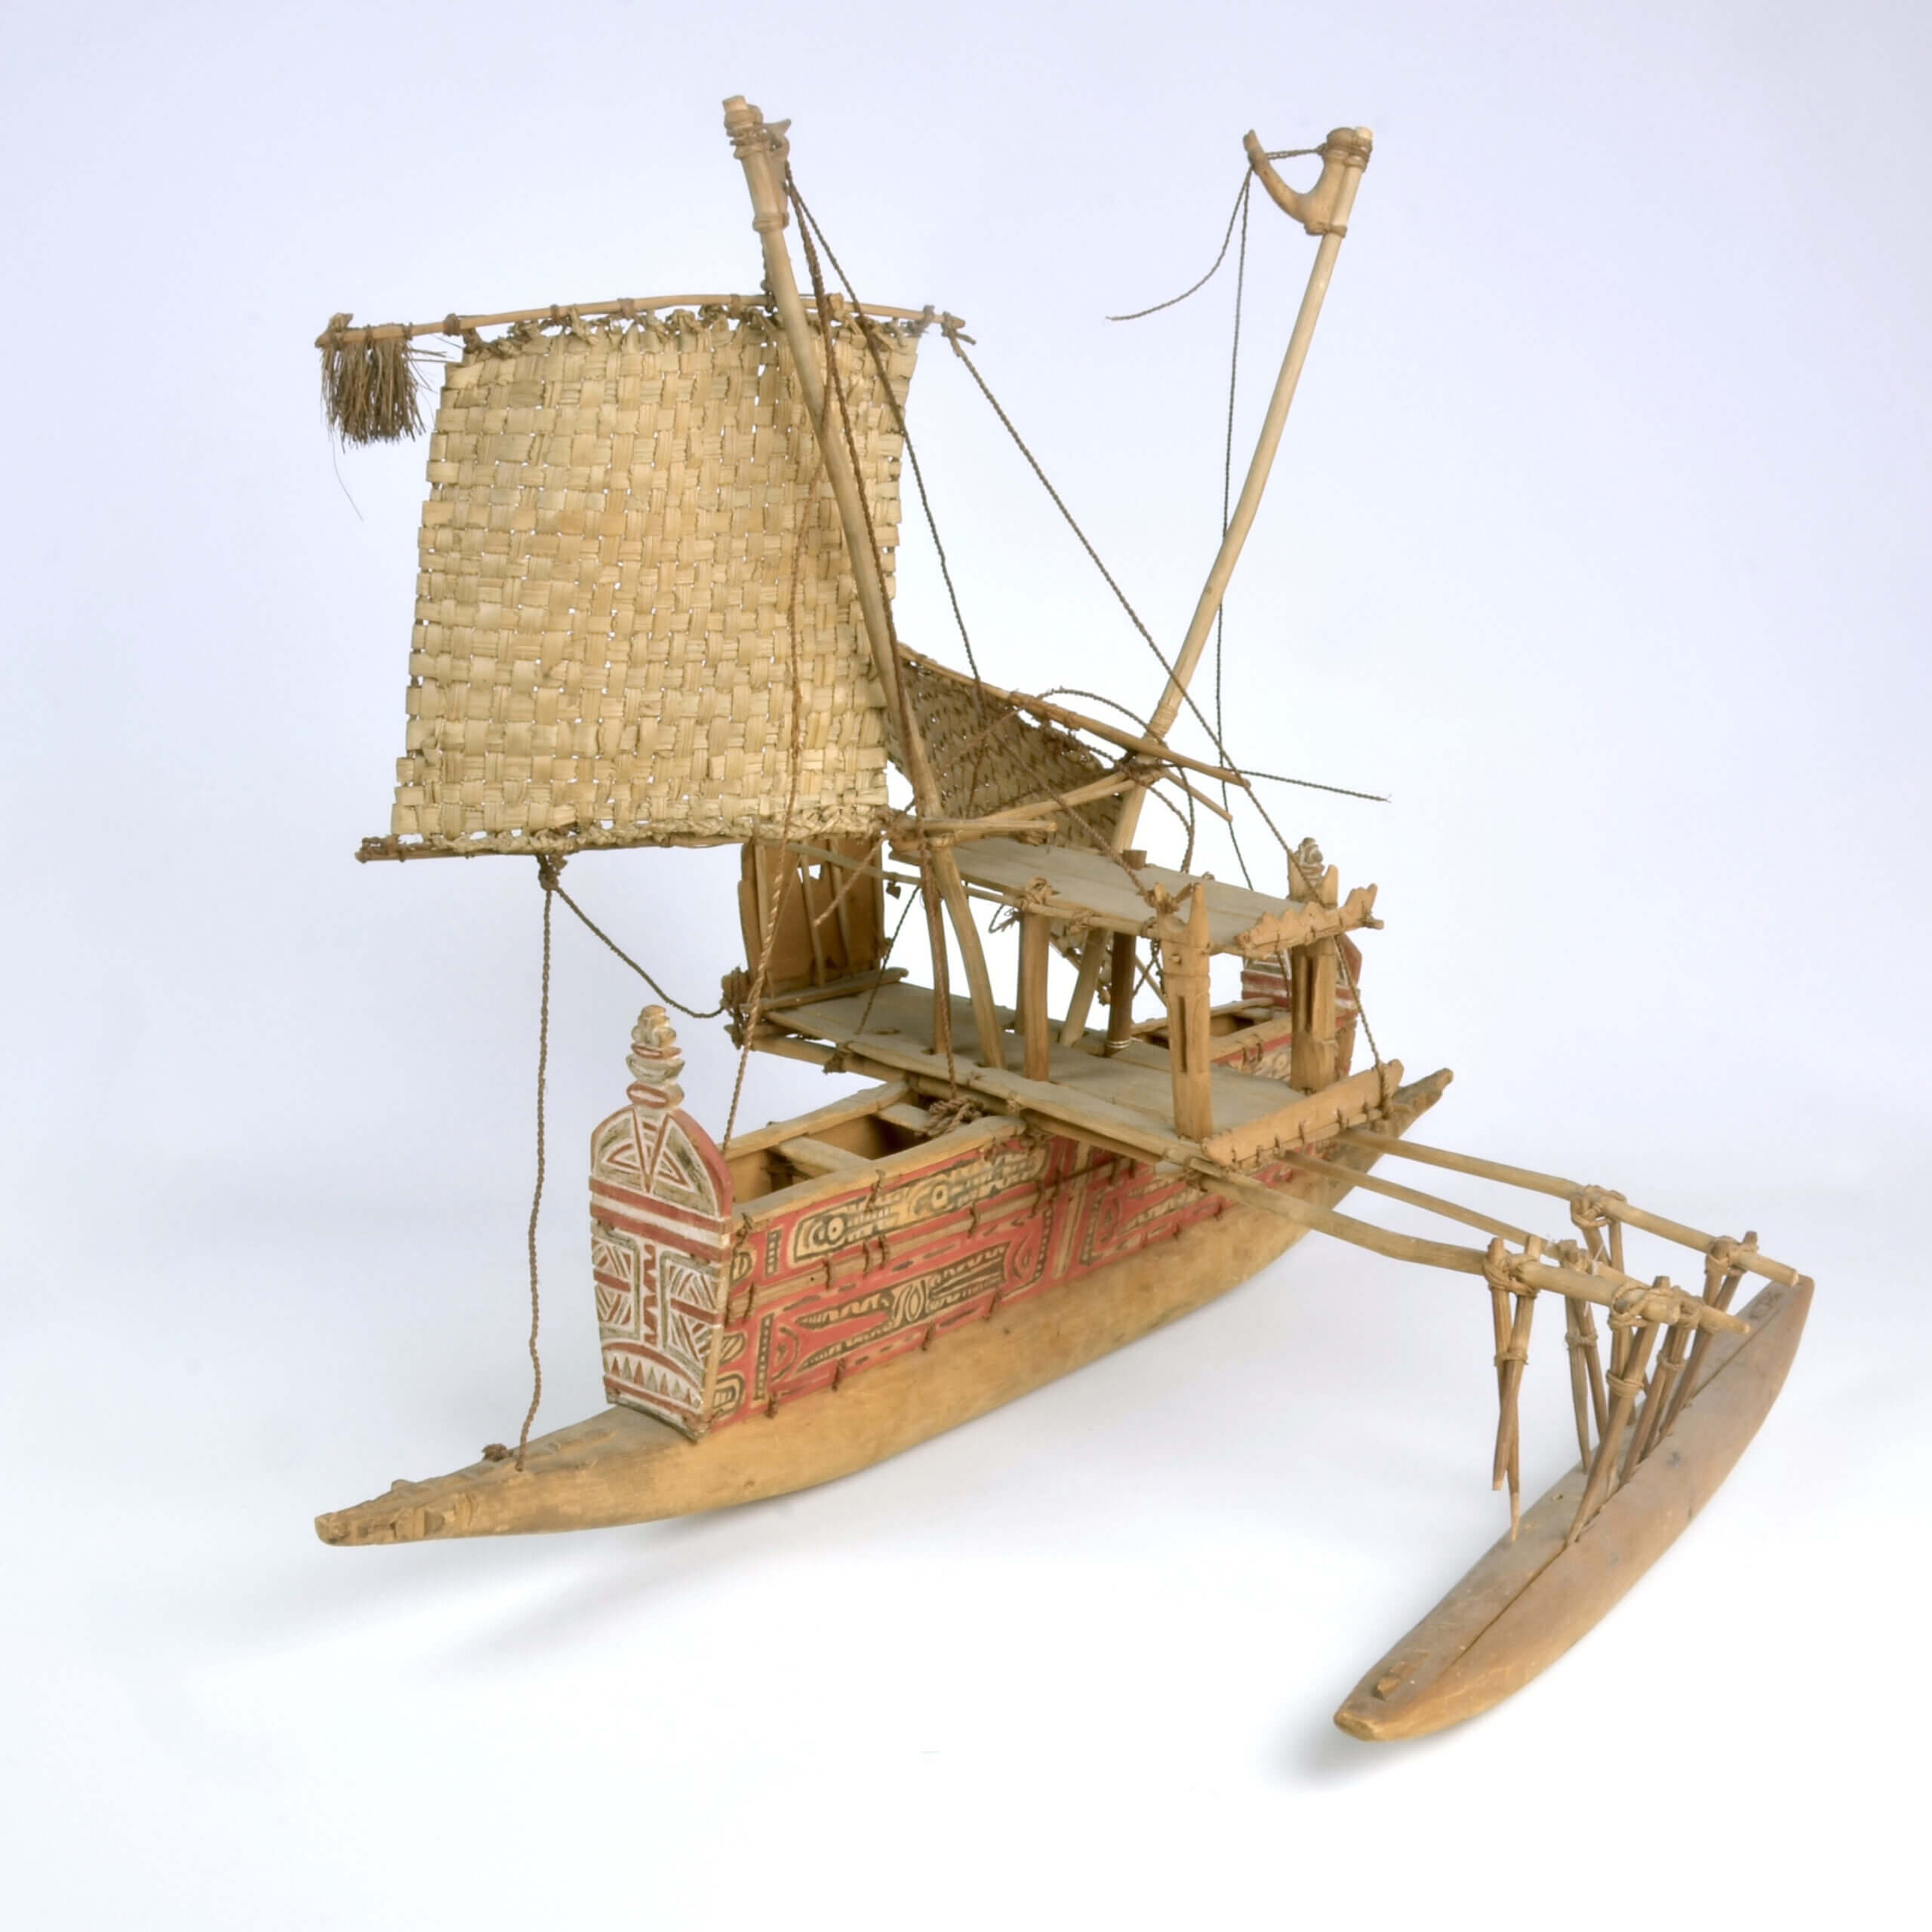 An Tami Islands Canoe model